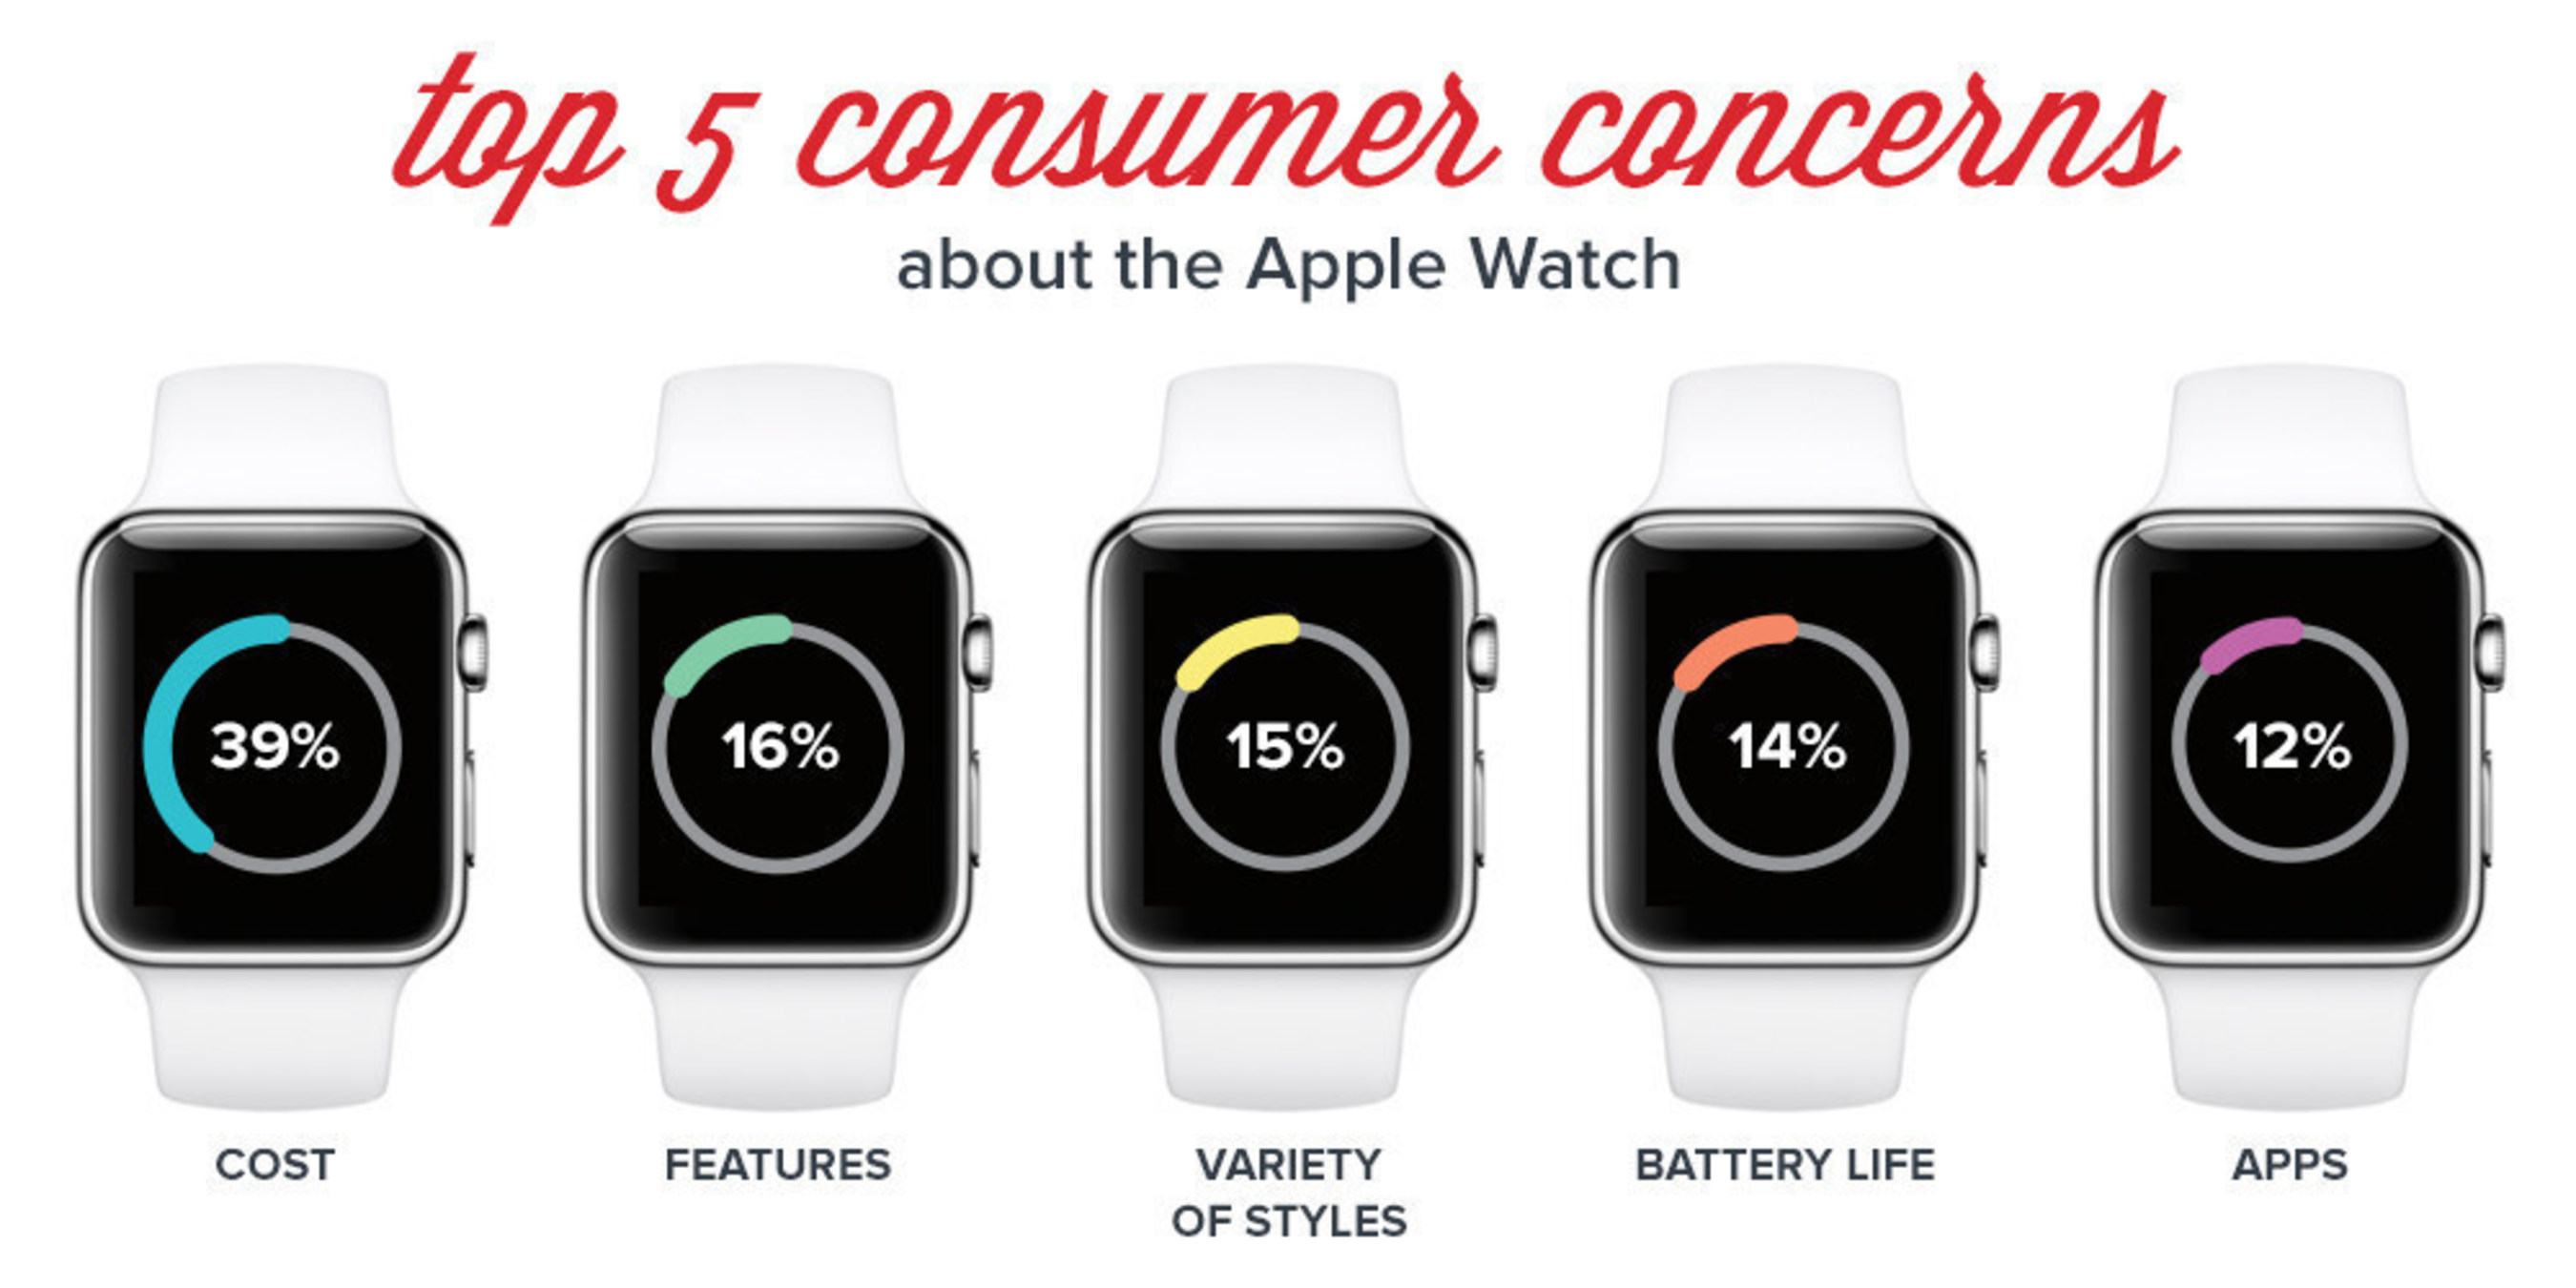 Terrible Twos? Consumers Weigh In As Apple Watch Enters Its Second Year